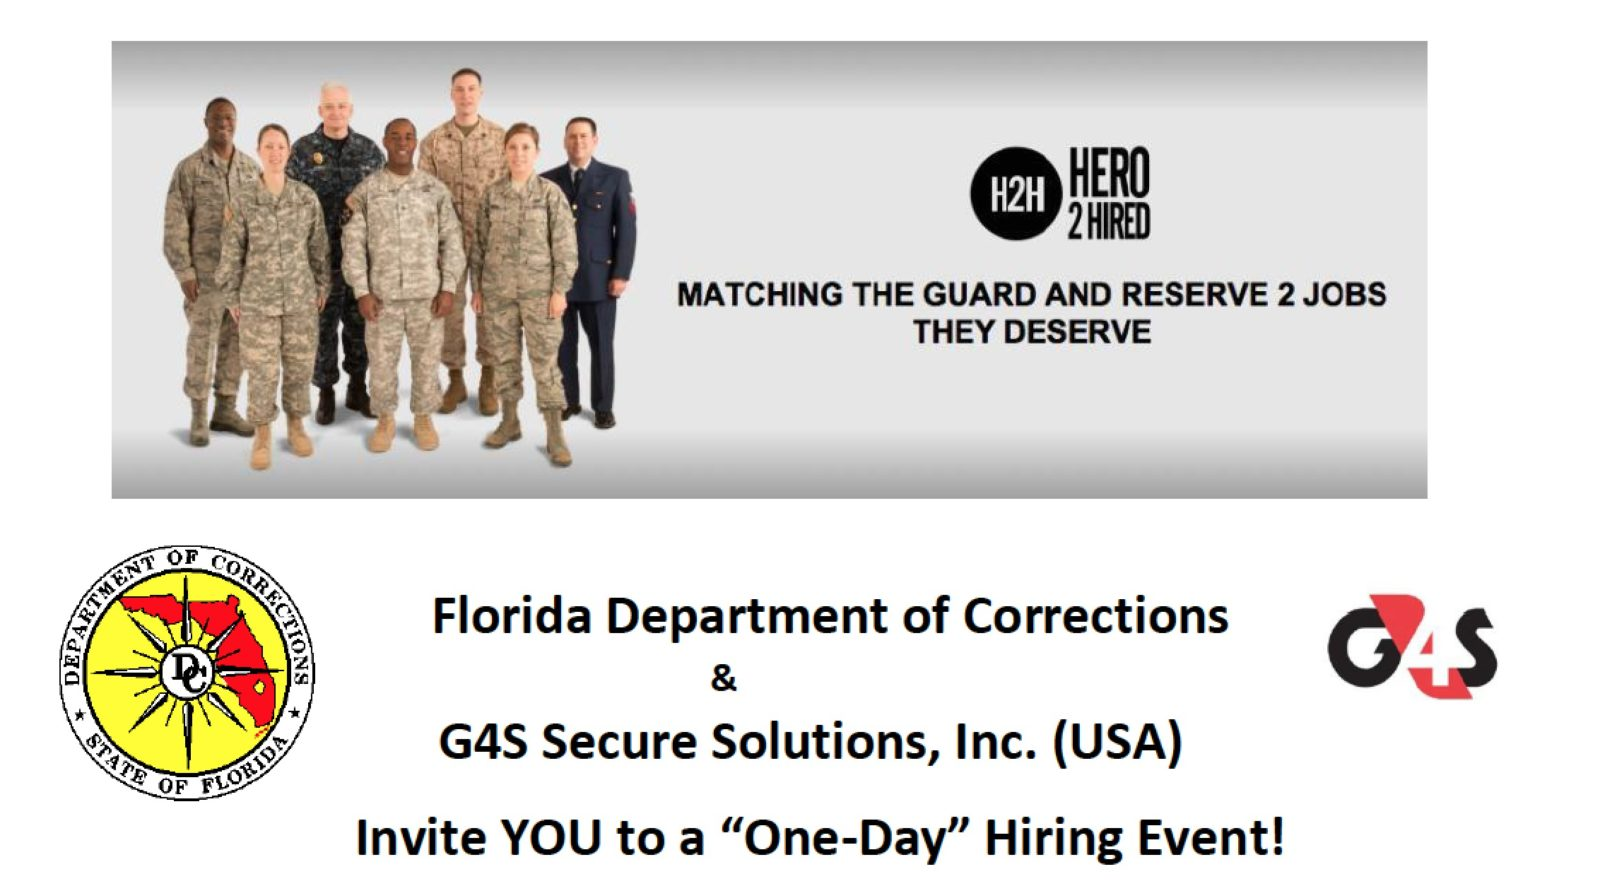 100's of IMMEDIATE JOB OPENINGS FOR STATEWIDE GUARD AND RESERVE MEMBERS THROUGHOUT FLORIDA